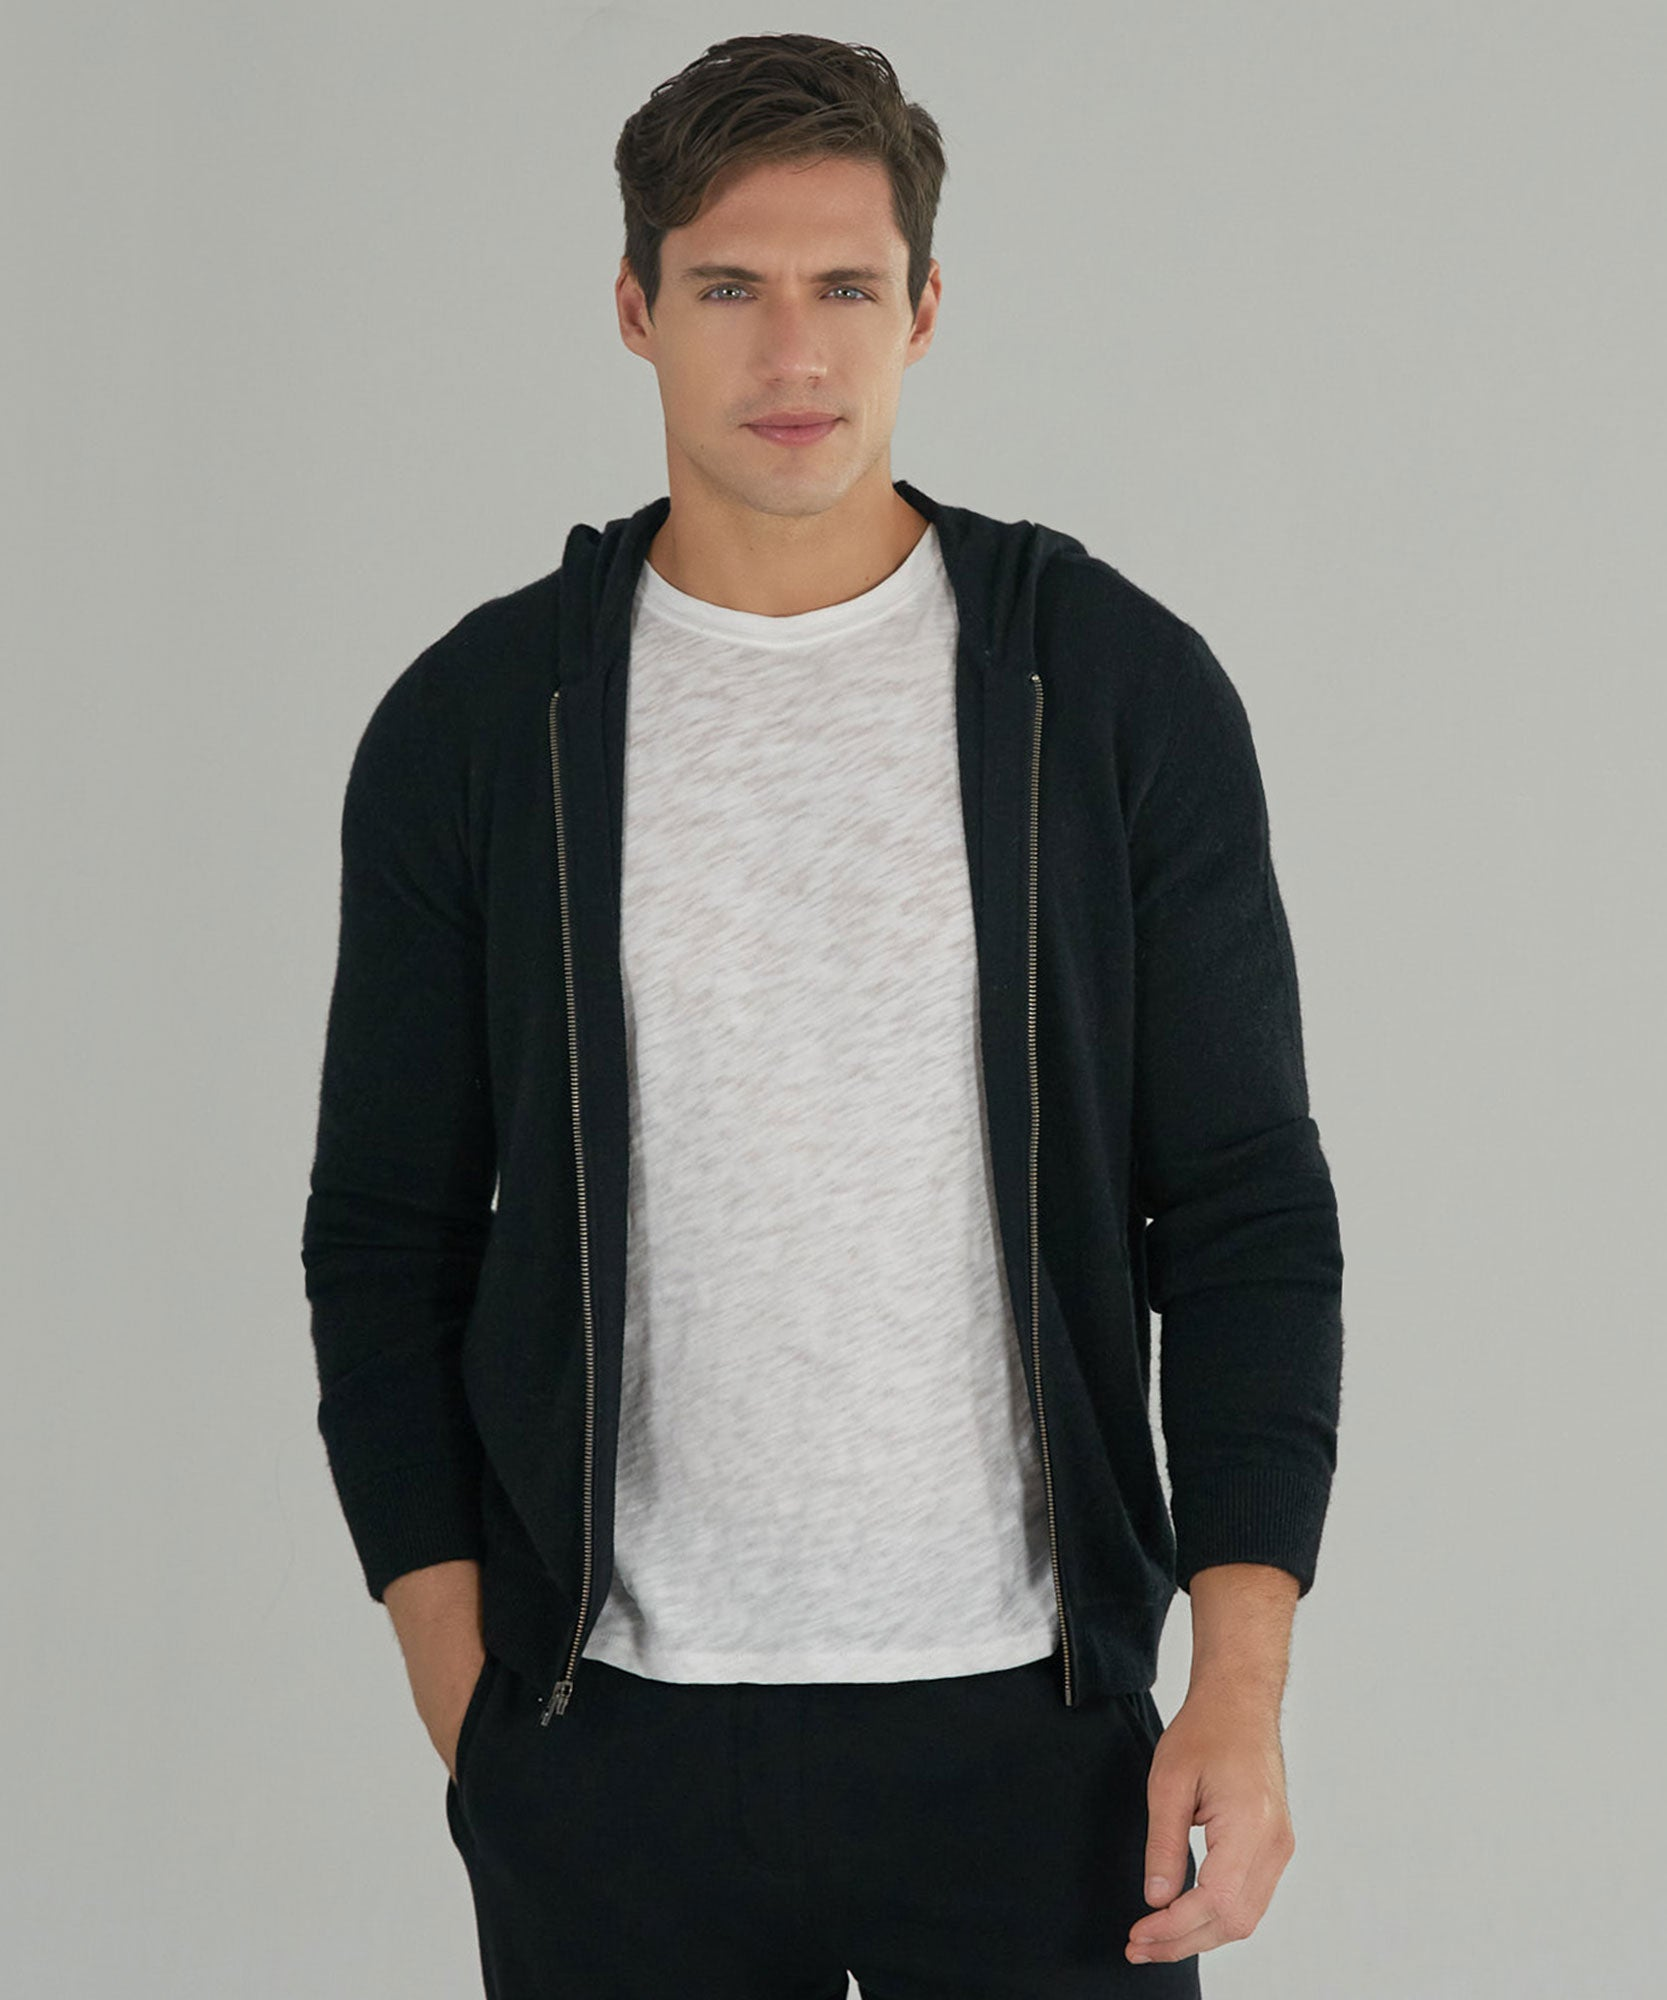 Black Cashmere Blend Zip-Up Hoodie - Men's Sweater by ATM Anthony Thomas Melillo